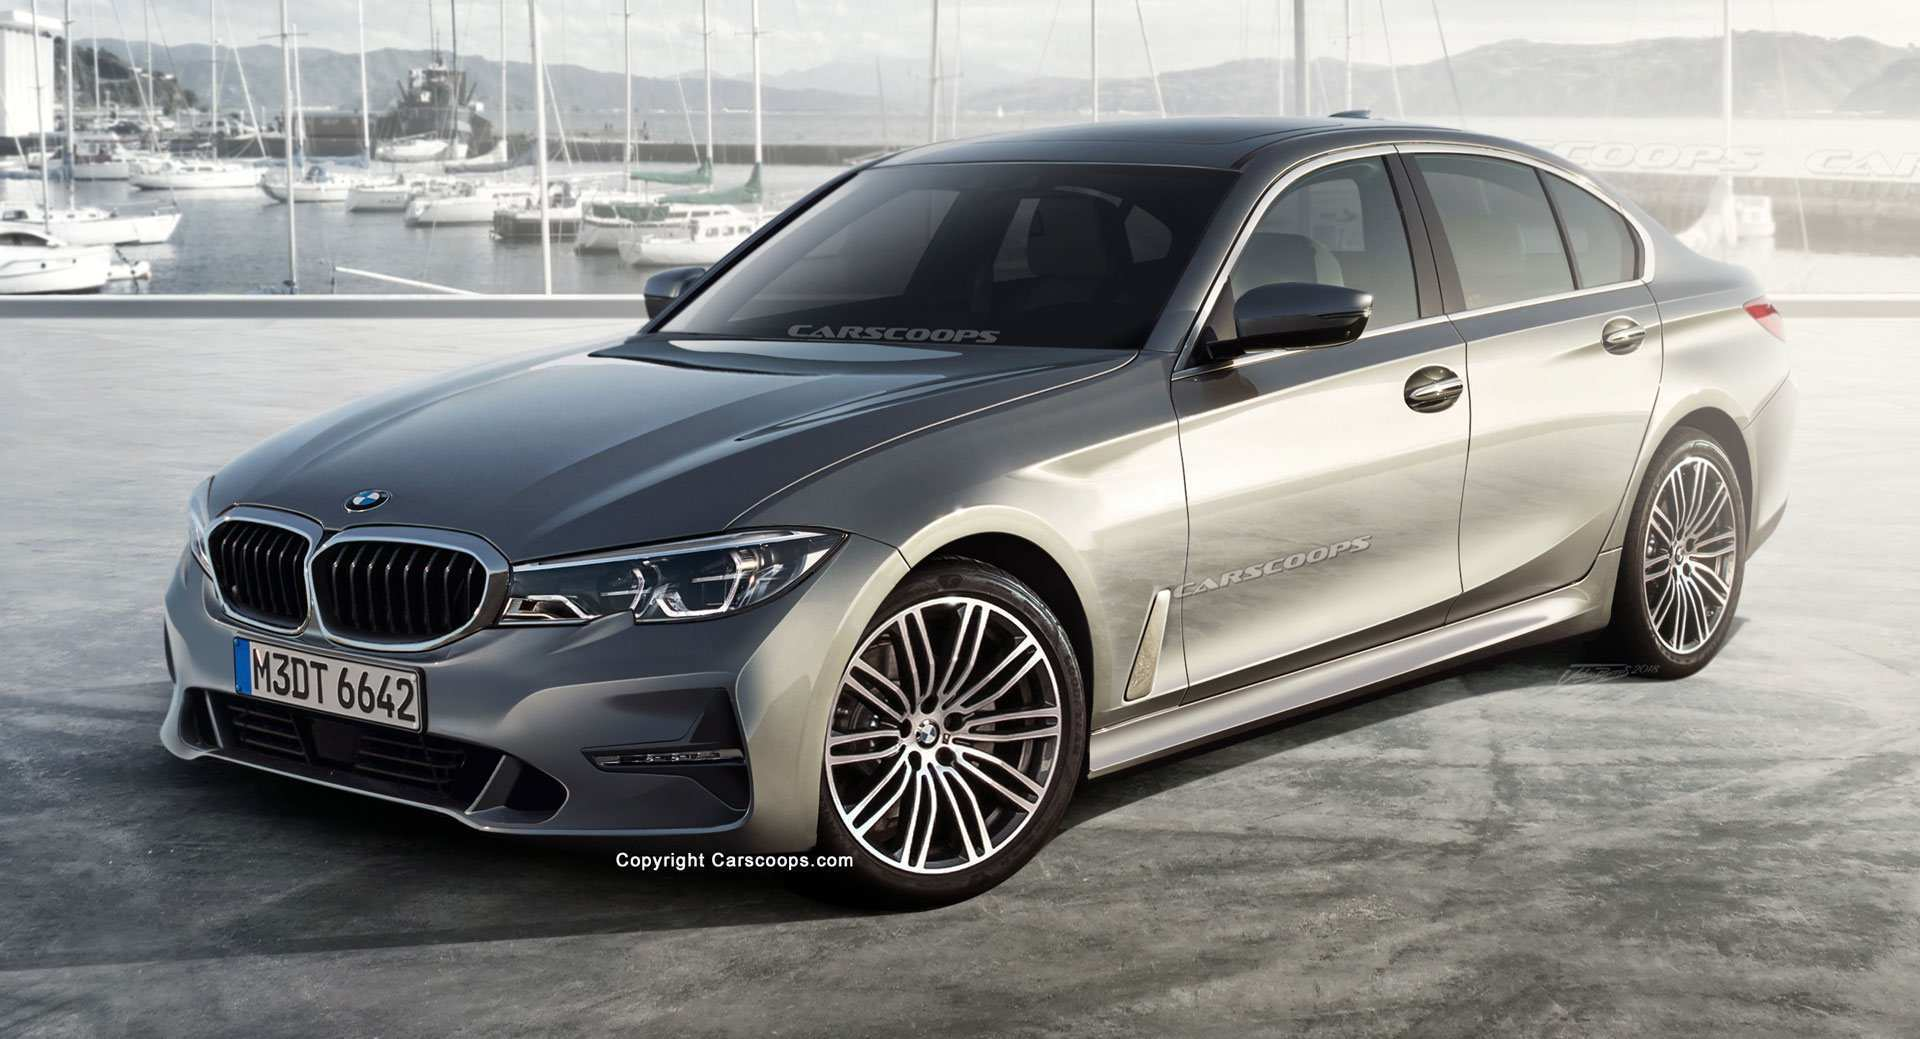 80 Concept of 2019 3 Series Bmw New Review by 2019 3 Series Bmw